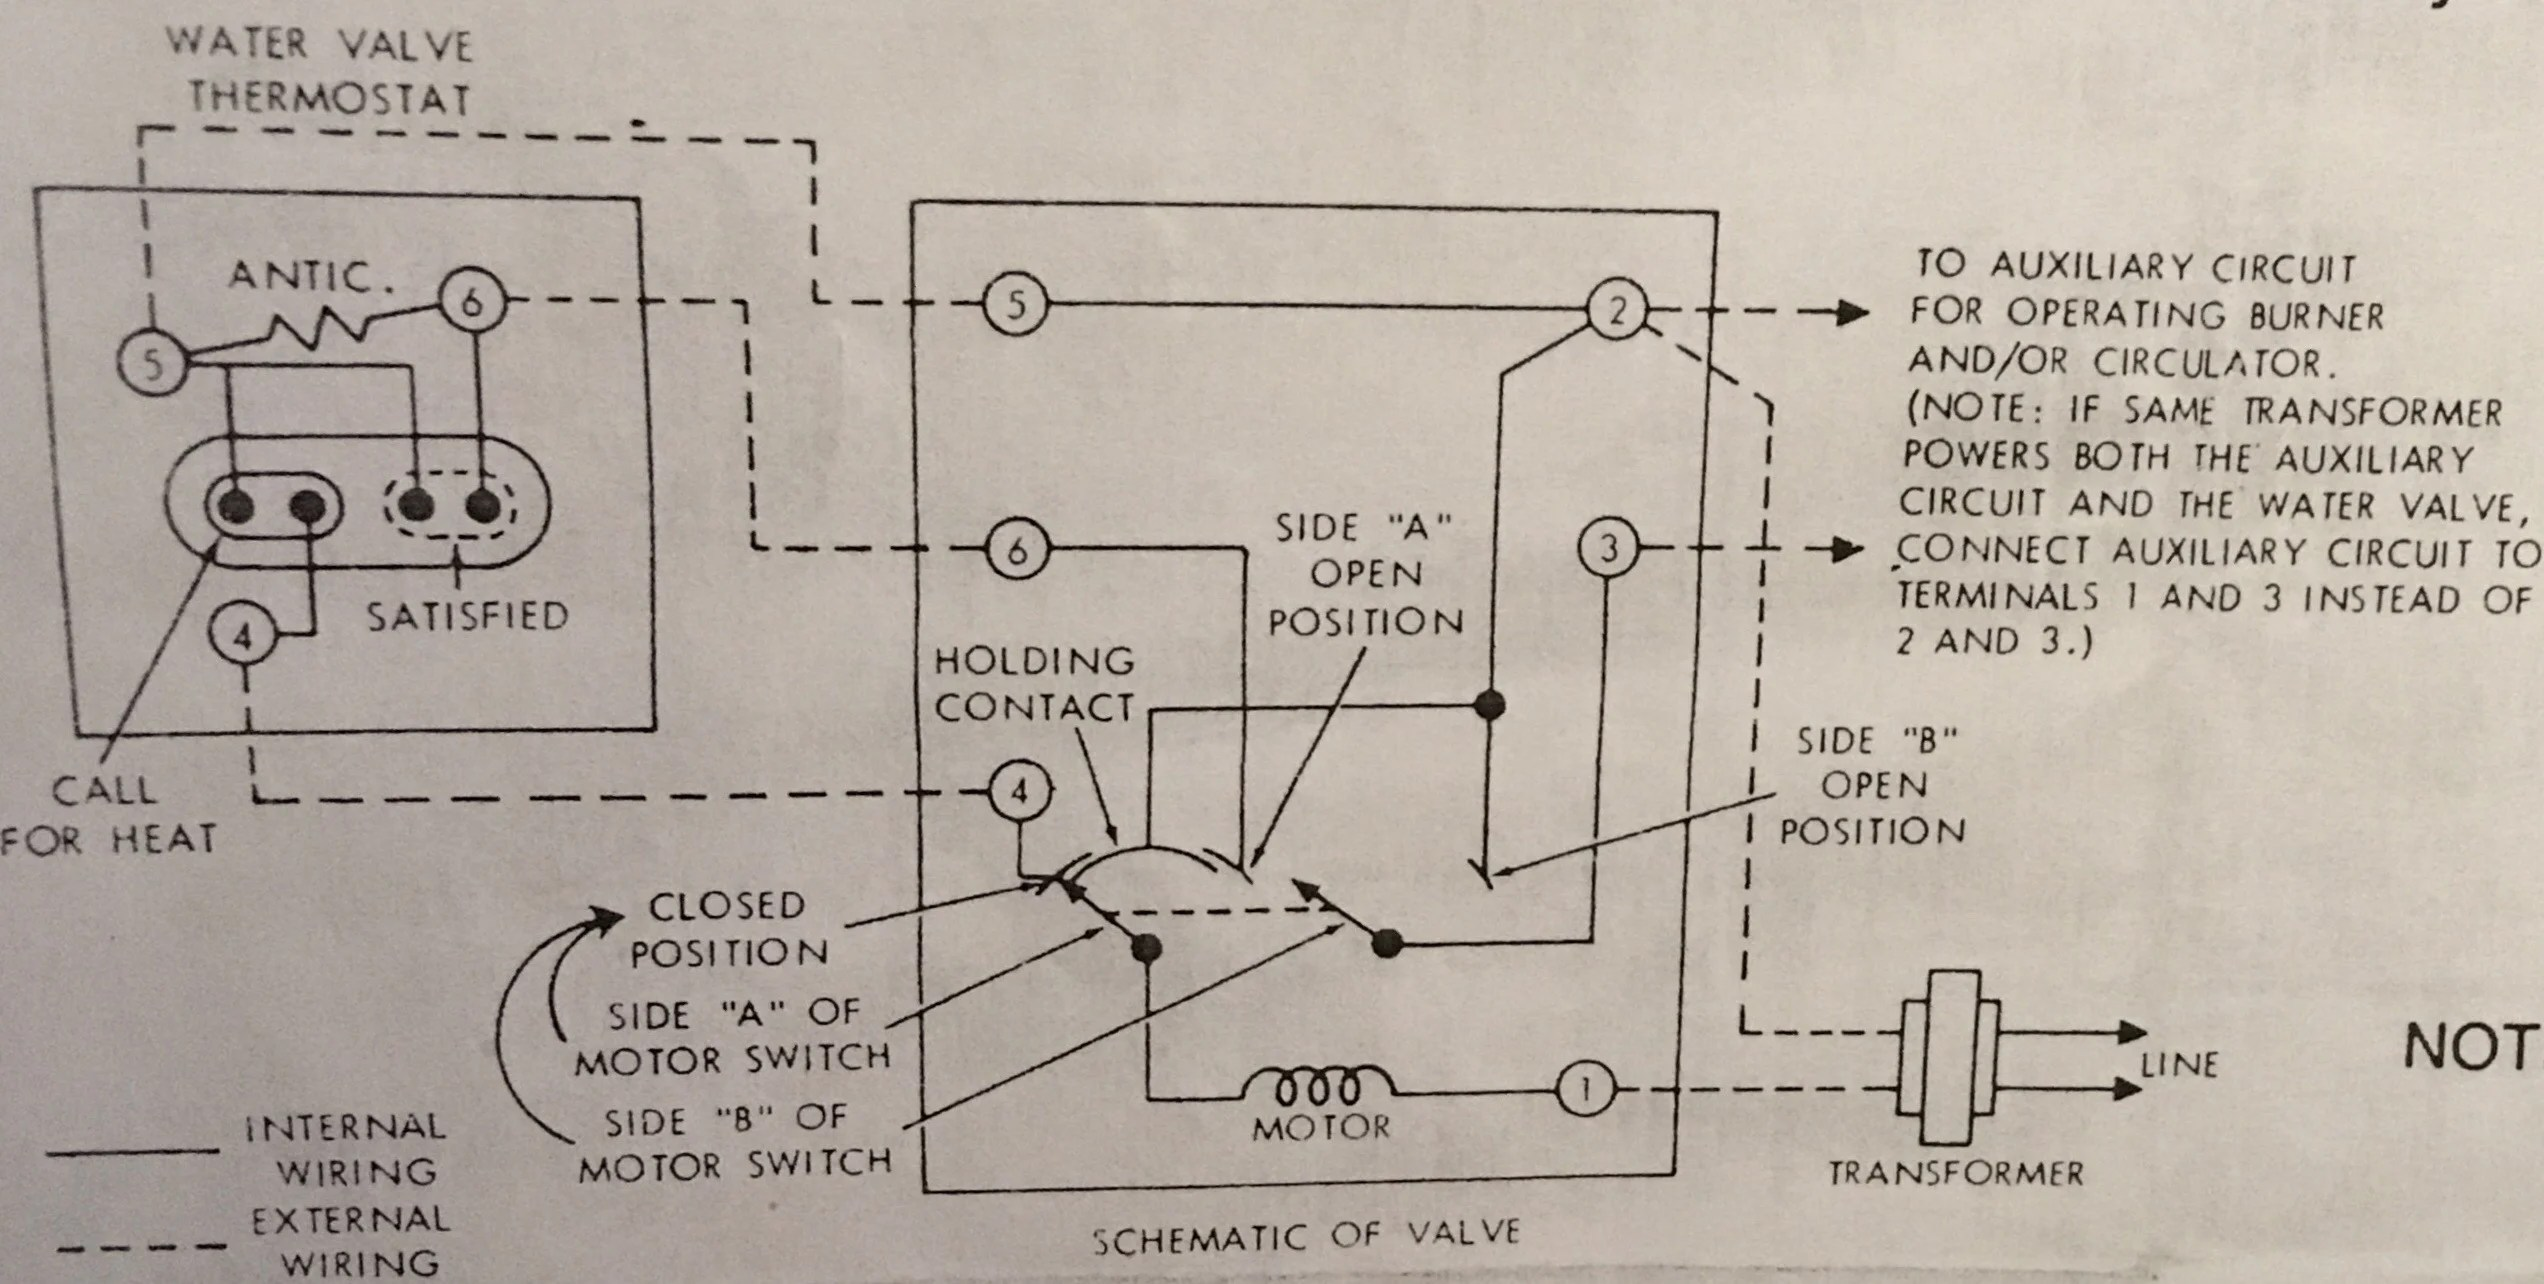 Motor Wiring Diagram Additionally Water Heater 220 Volt Wiring Diagram